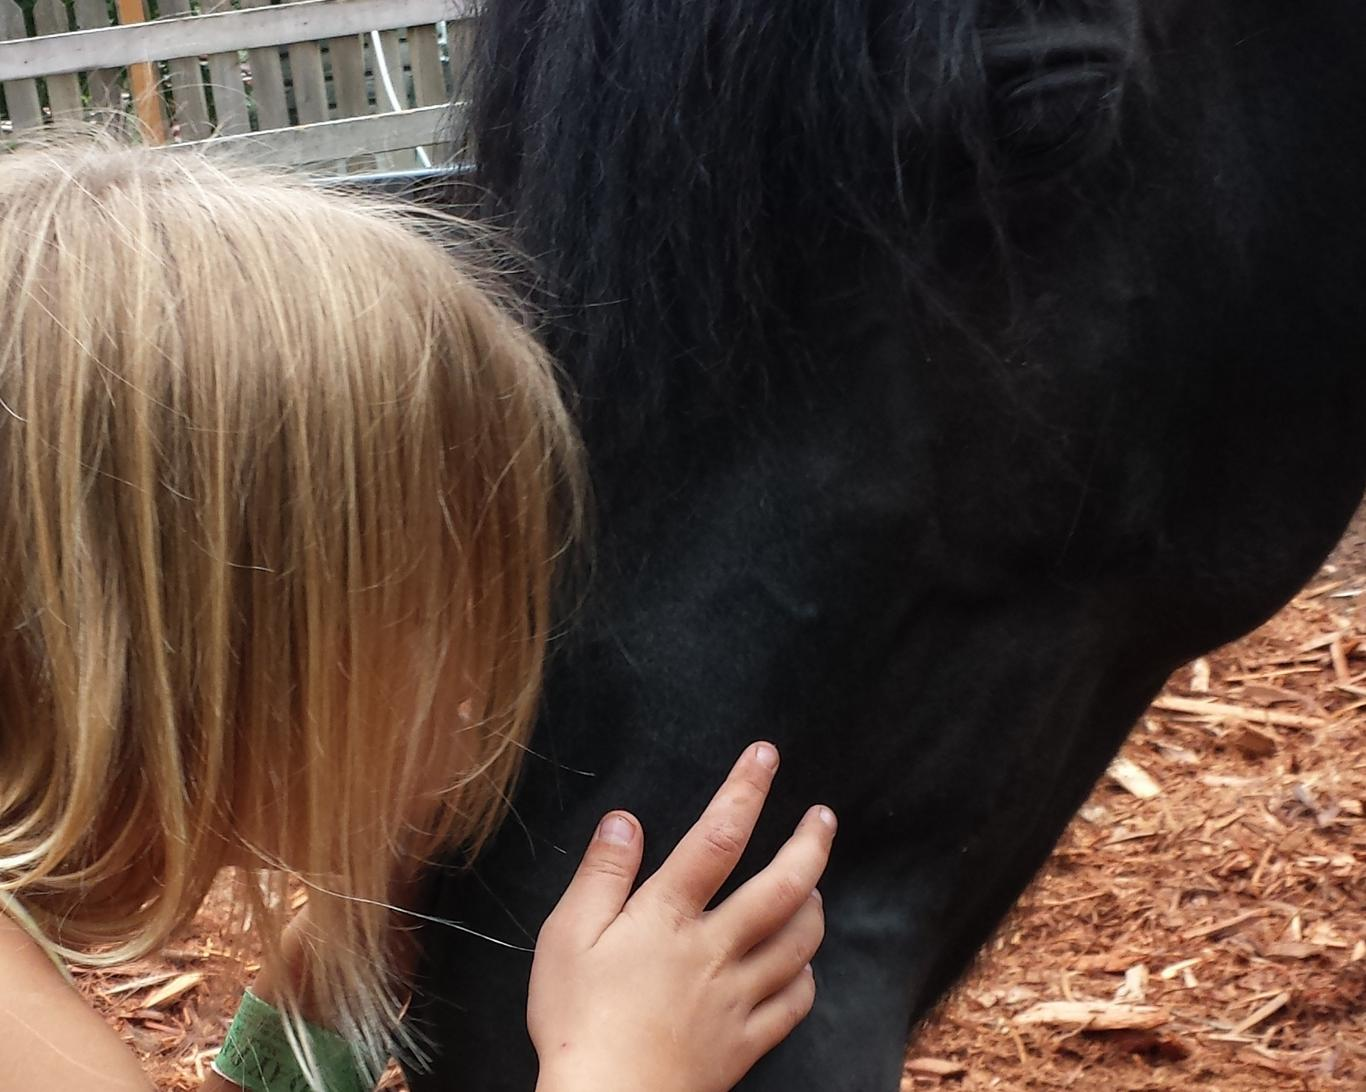 It's easy for a girl and horse to fall in love in the First Love Farm program